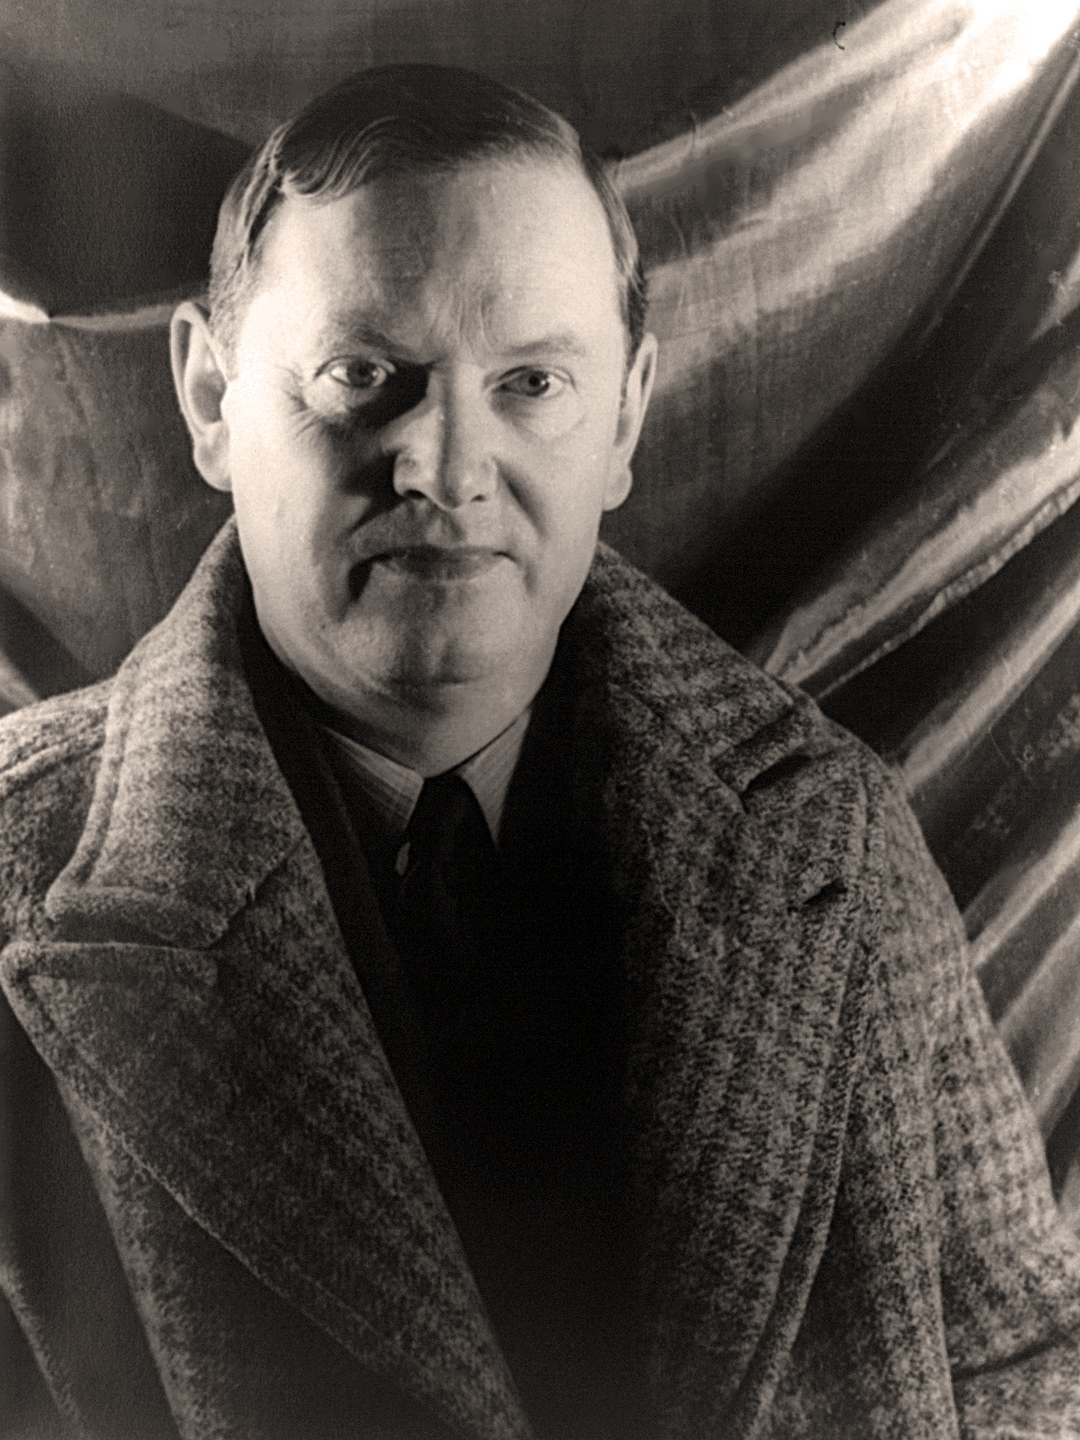 Evelyn Waugh, photographed in about 1940